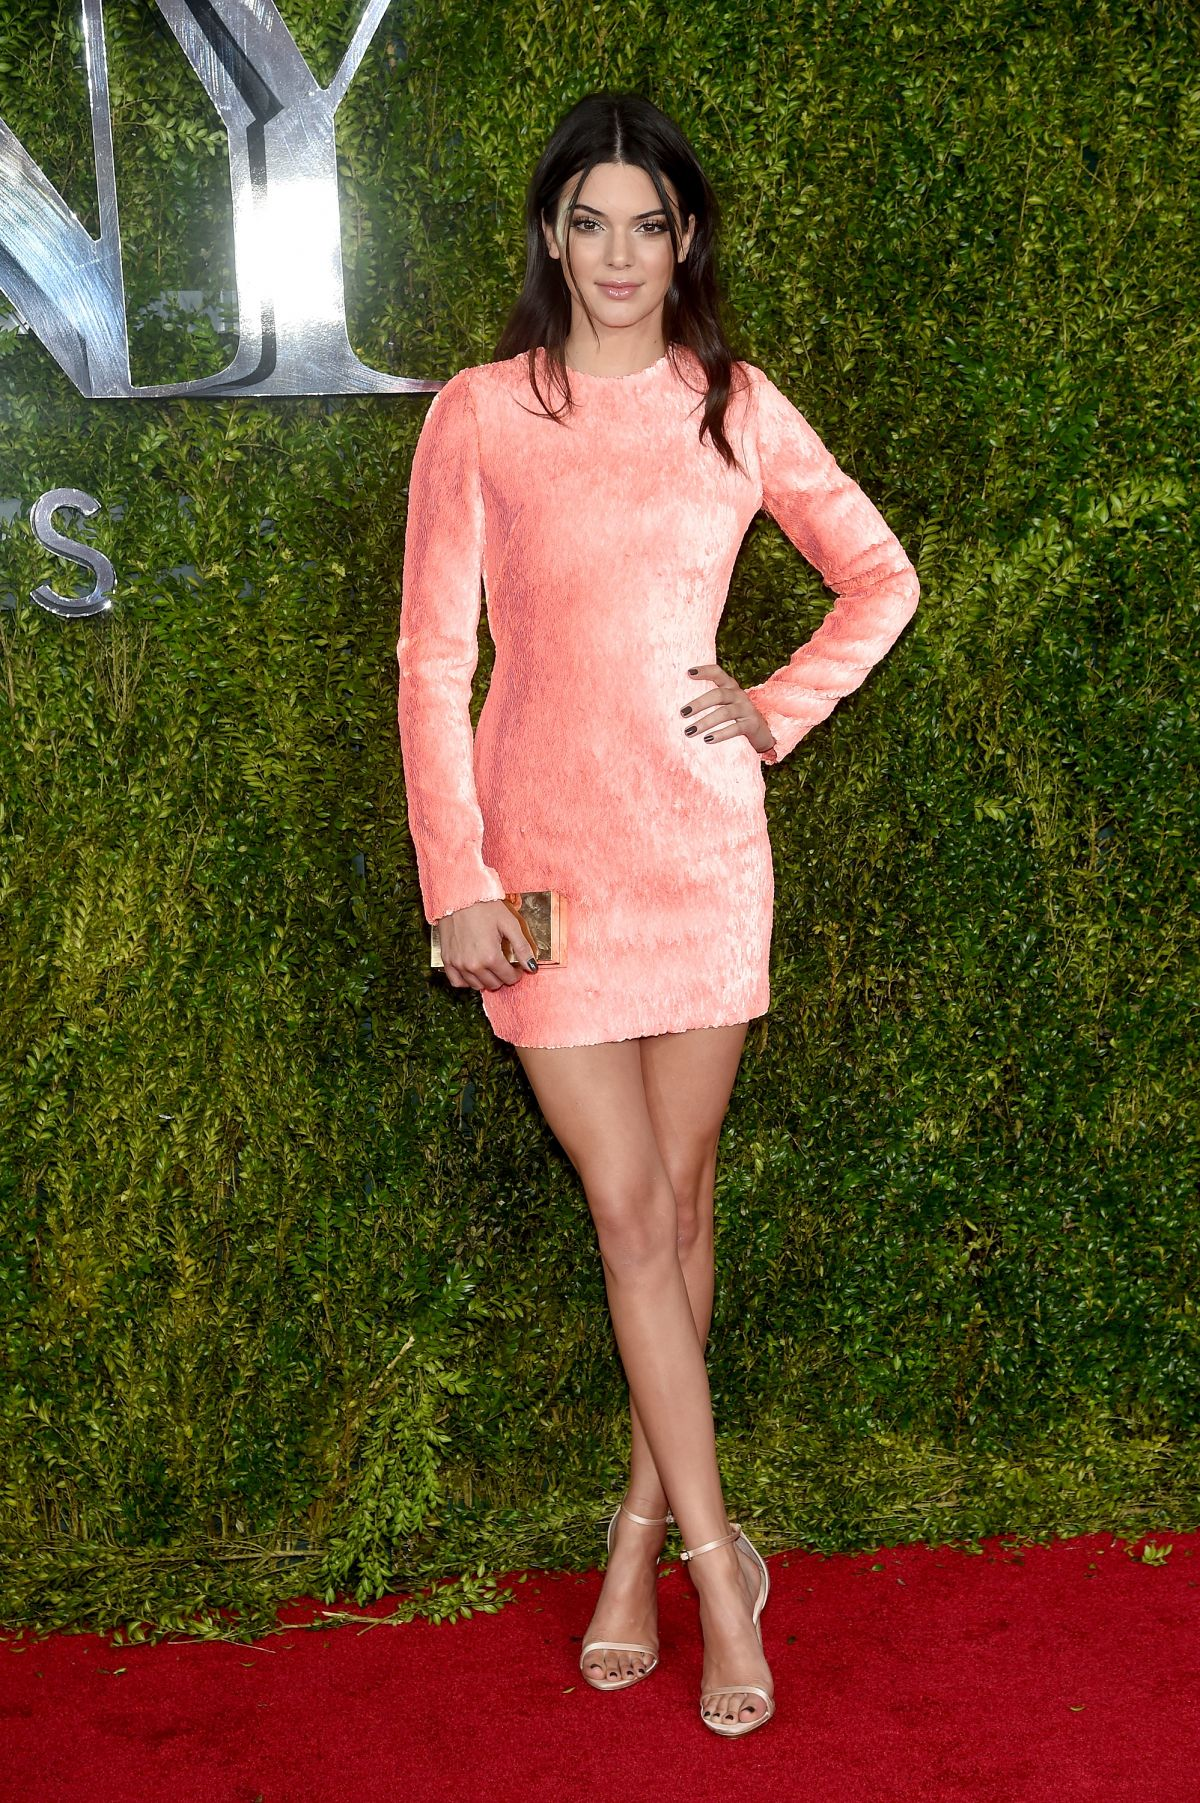 KENDALL JENNER at 2015 Tony Awards in New York